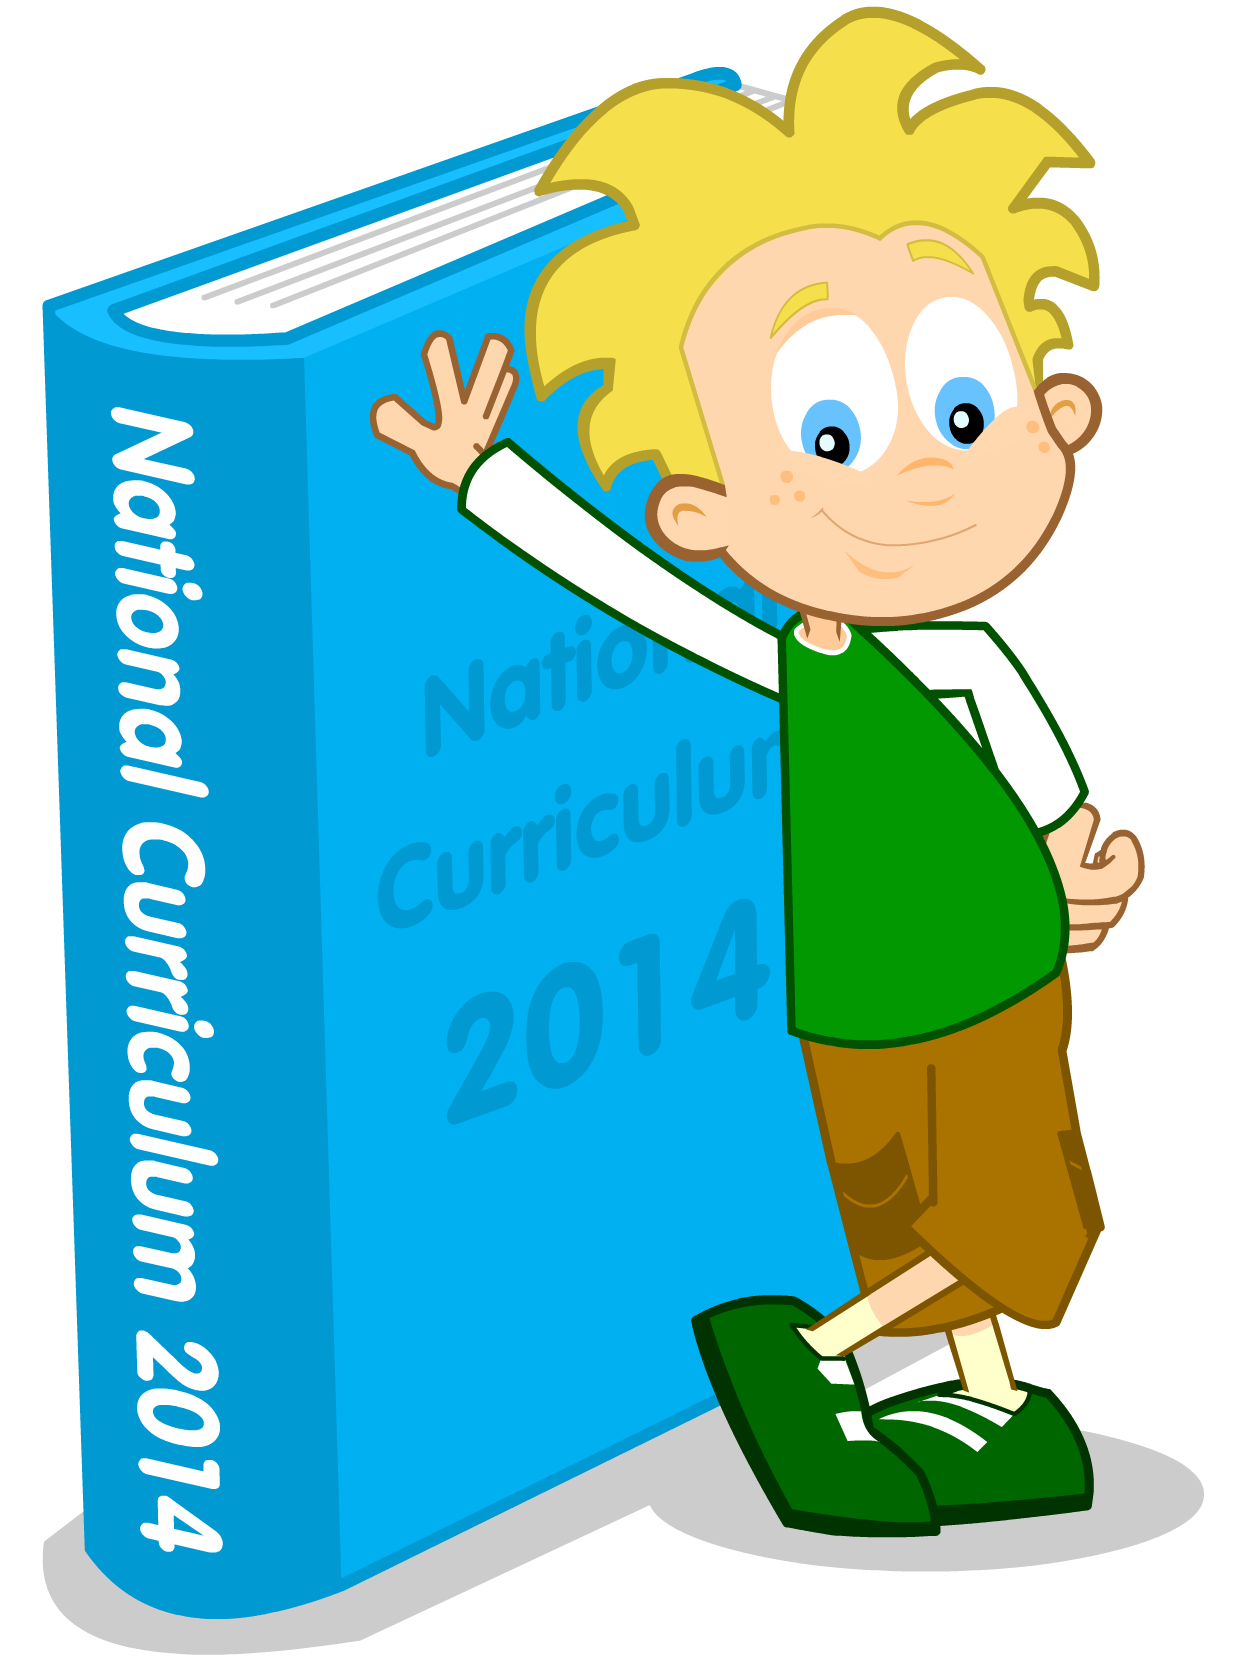 Curriculum clipart. Embedding england s new